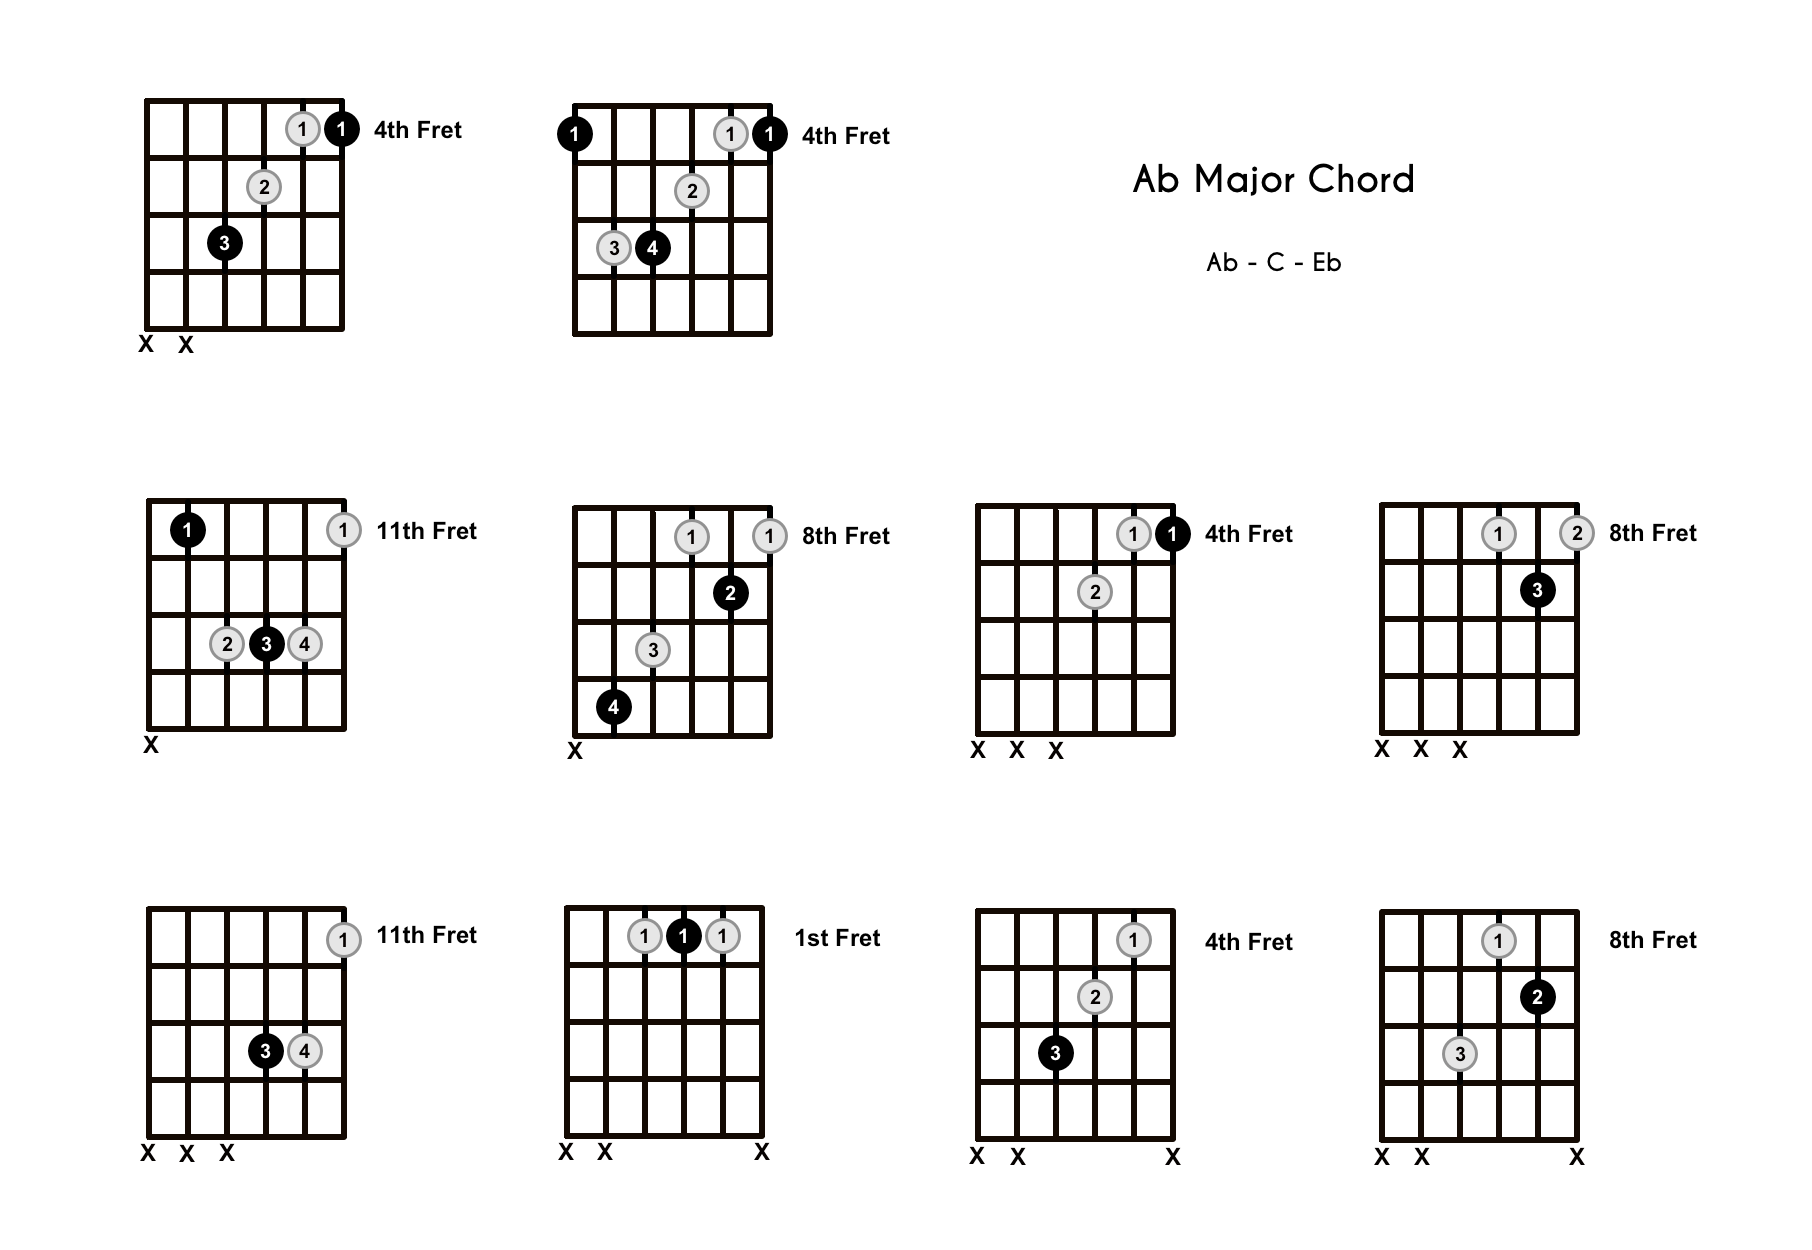 Ab Chord on the Guitar (A Flat Major) – Diagrams, Finger Positions, Theory